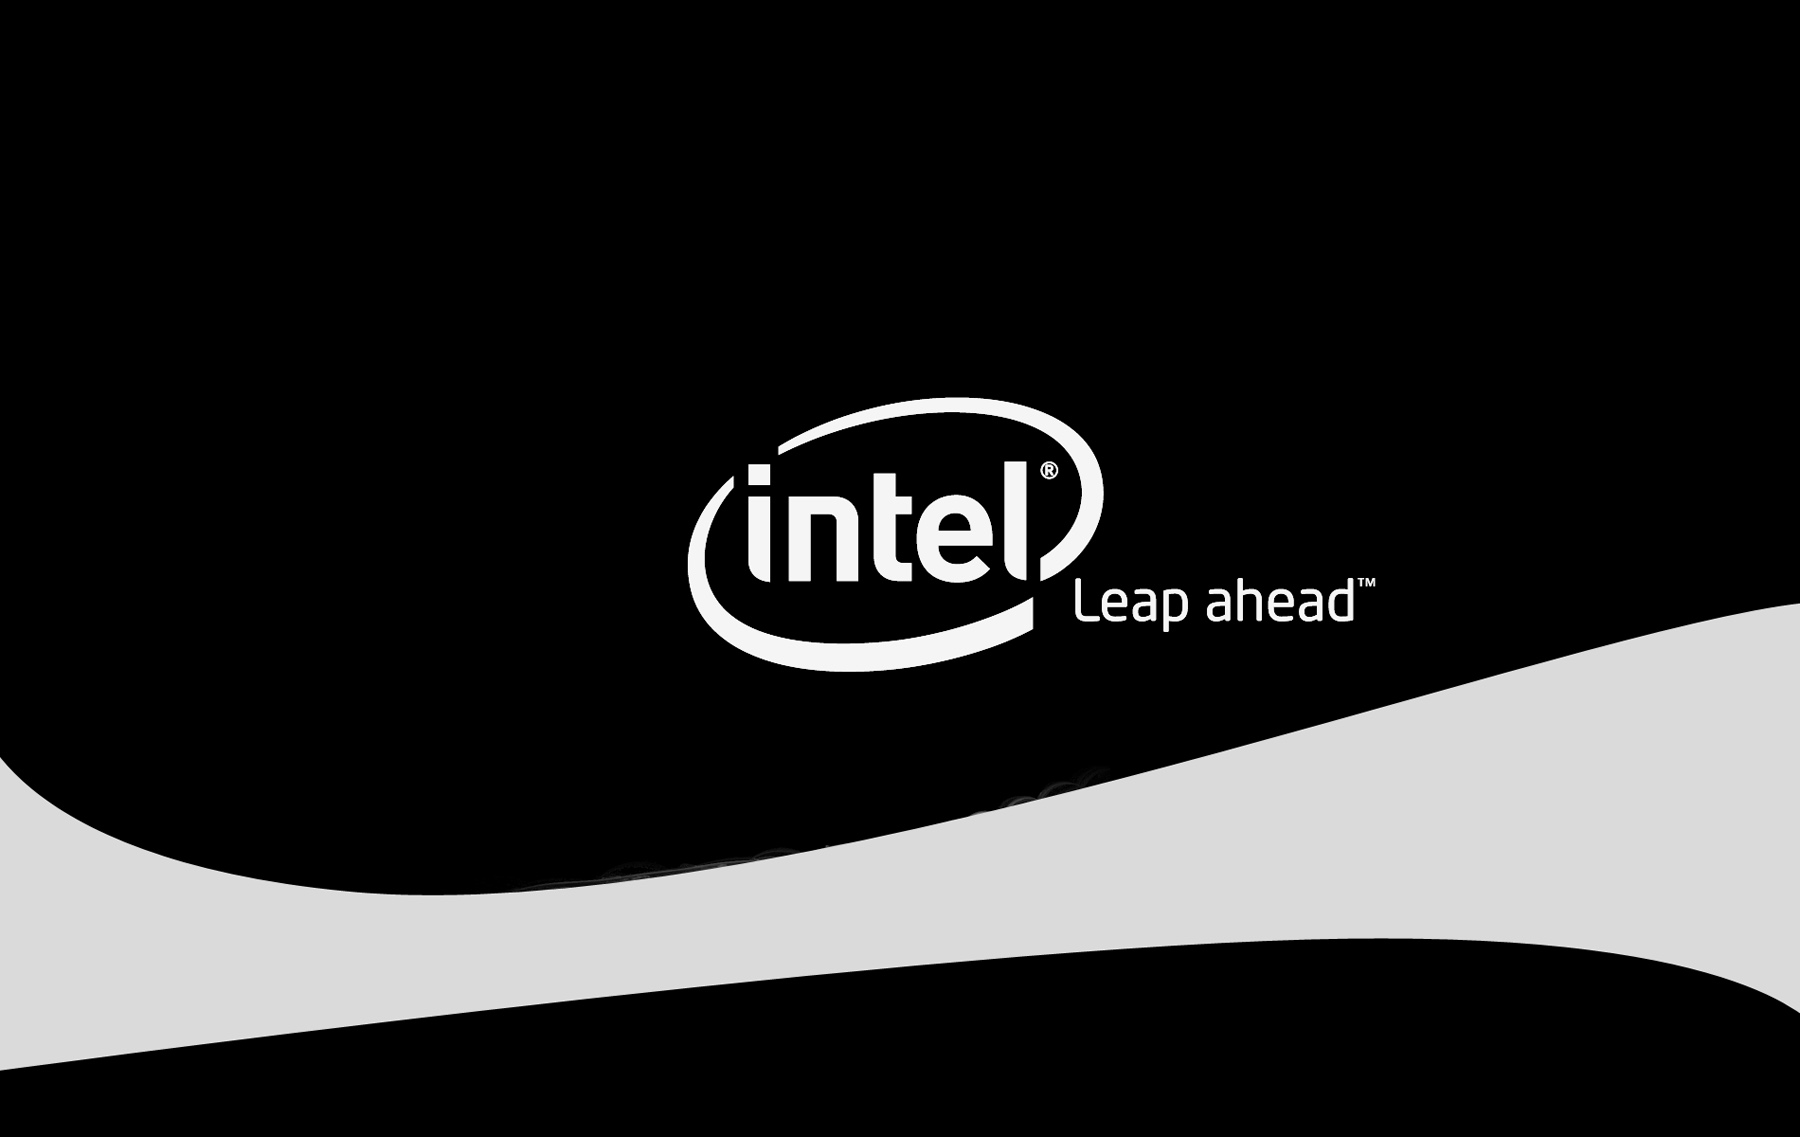 Intel Logo WallpapersDaily Backgrounds in HD 961